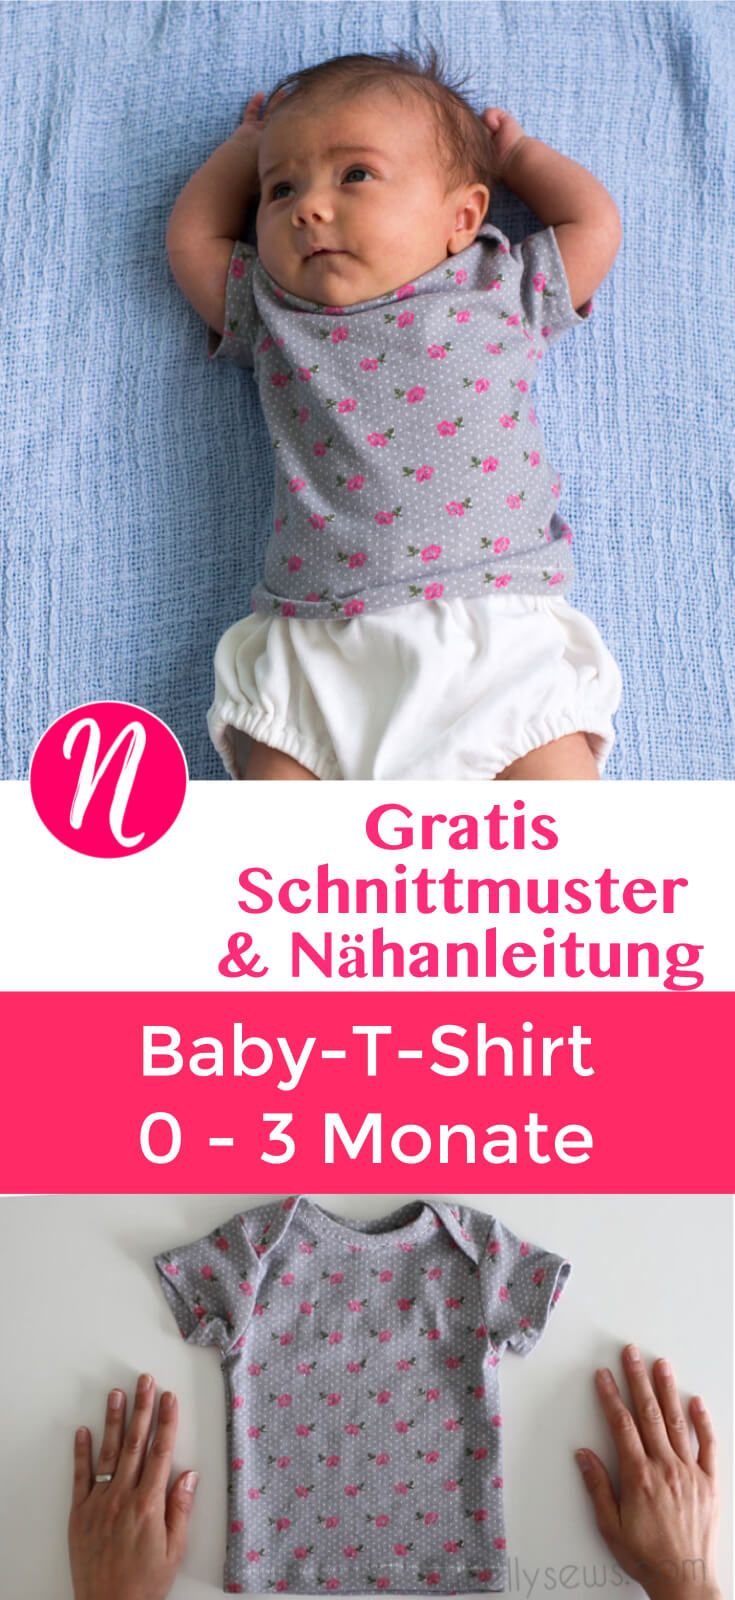 Kostenloses Schnittmuster Baby-T-Shirt ❤ mit Anleitung ❤ PDF Freebook zum Ausdrucken ❤ ✂ Nähtalente - Magazin für kostenlose Schnittmuster ✂ Free PDF Sewing Pattern for a Baby-T-Shirt for 0 - 3 month. Nice and easy to sew with photo-tutorial.